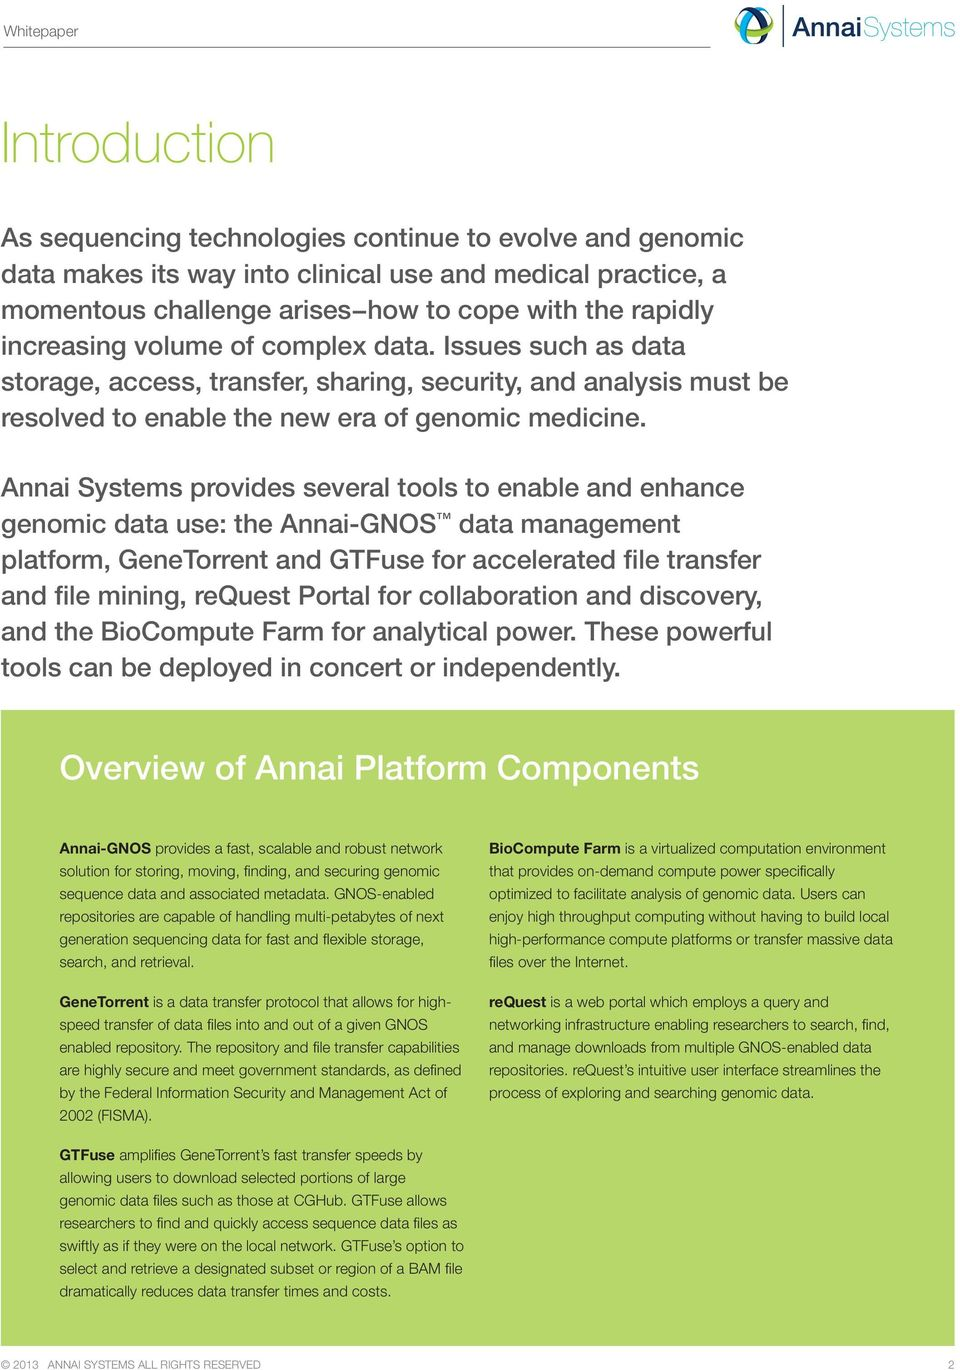 Annai Systems provides several tools to enable and enhance genomic data use: the Annai-GNOS data management platform, GeneTorrent and GTFuse for accelerated file transfer and file mining, request